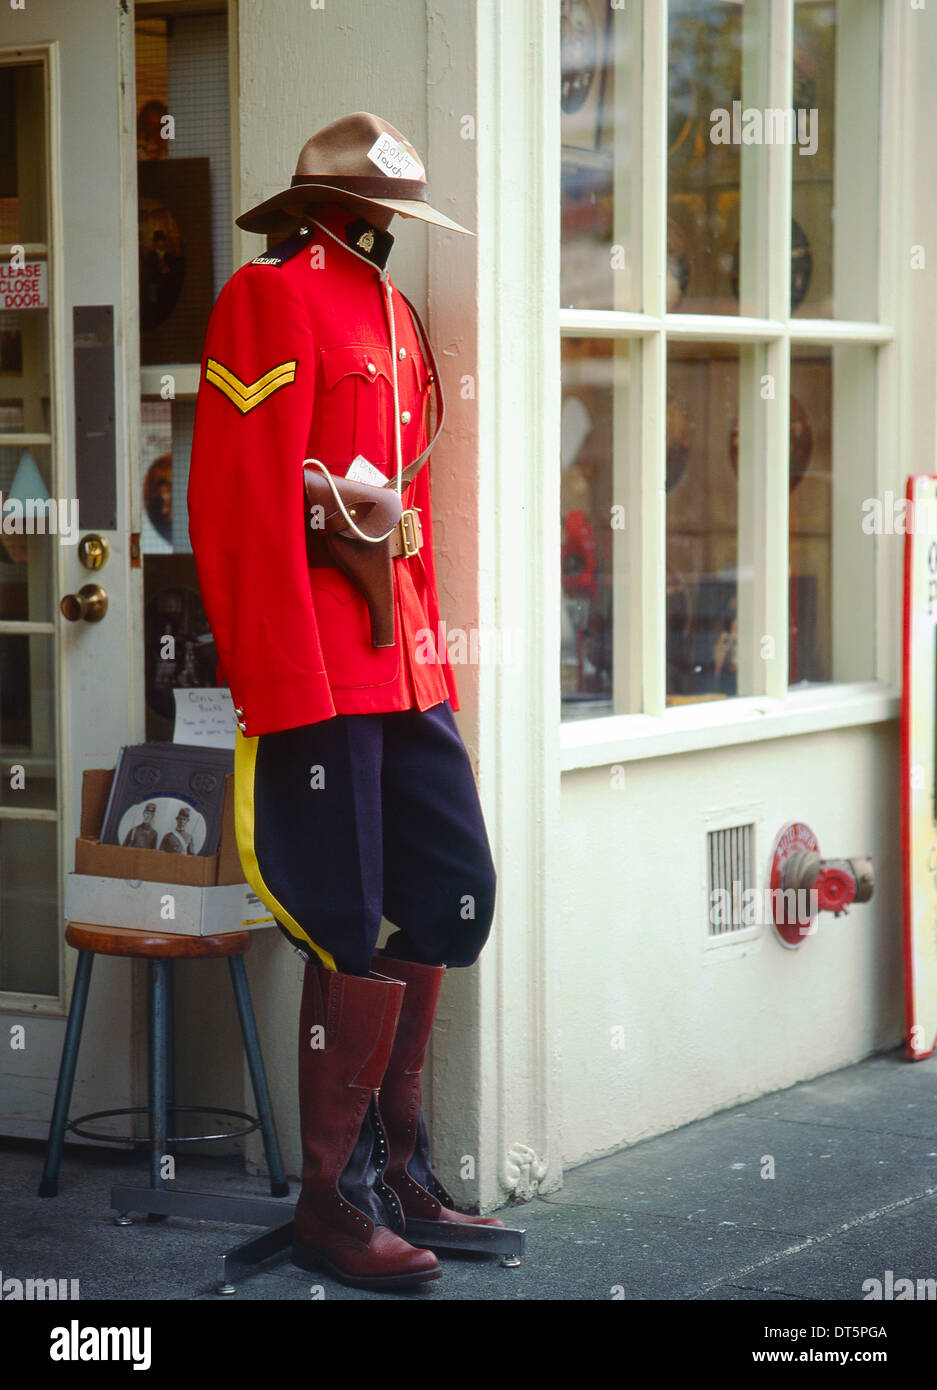 Ceremonial dress of the Mounted Canadian Police or Mounties Stock Photo